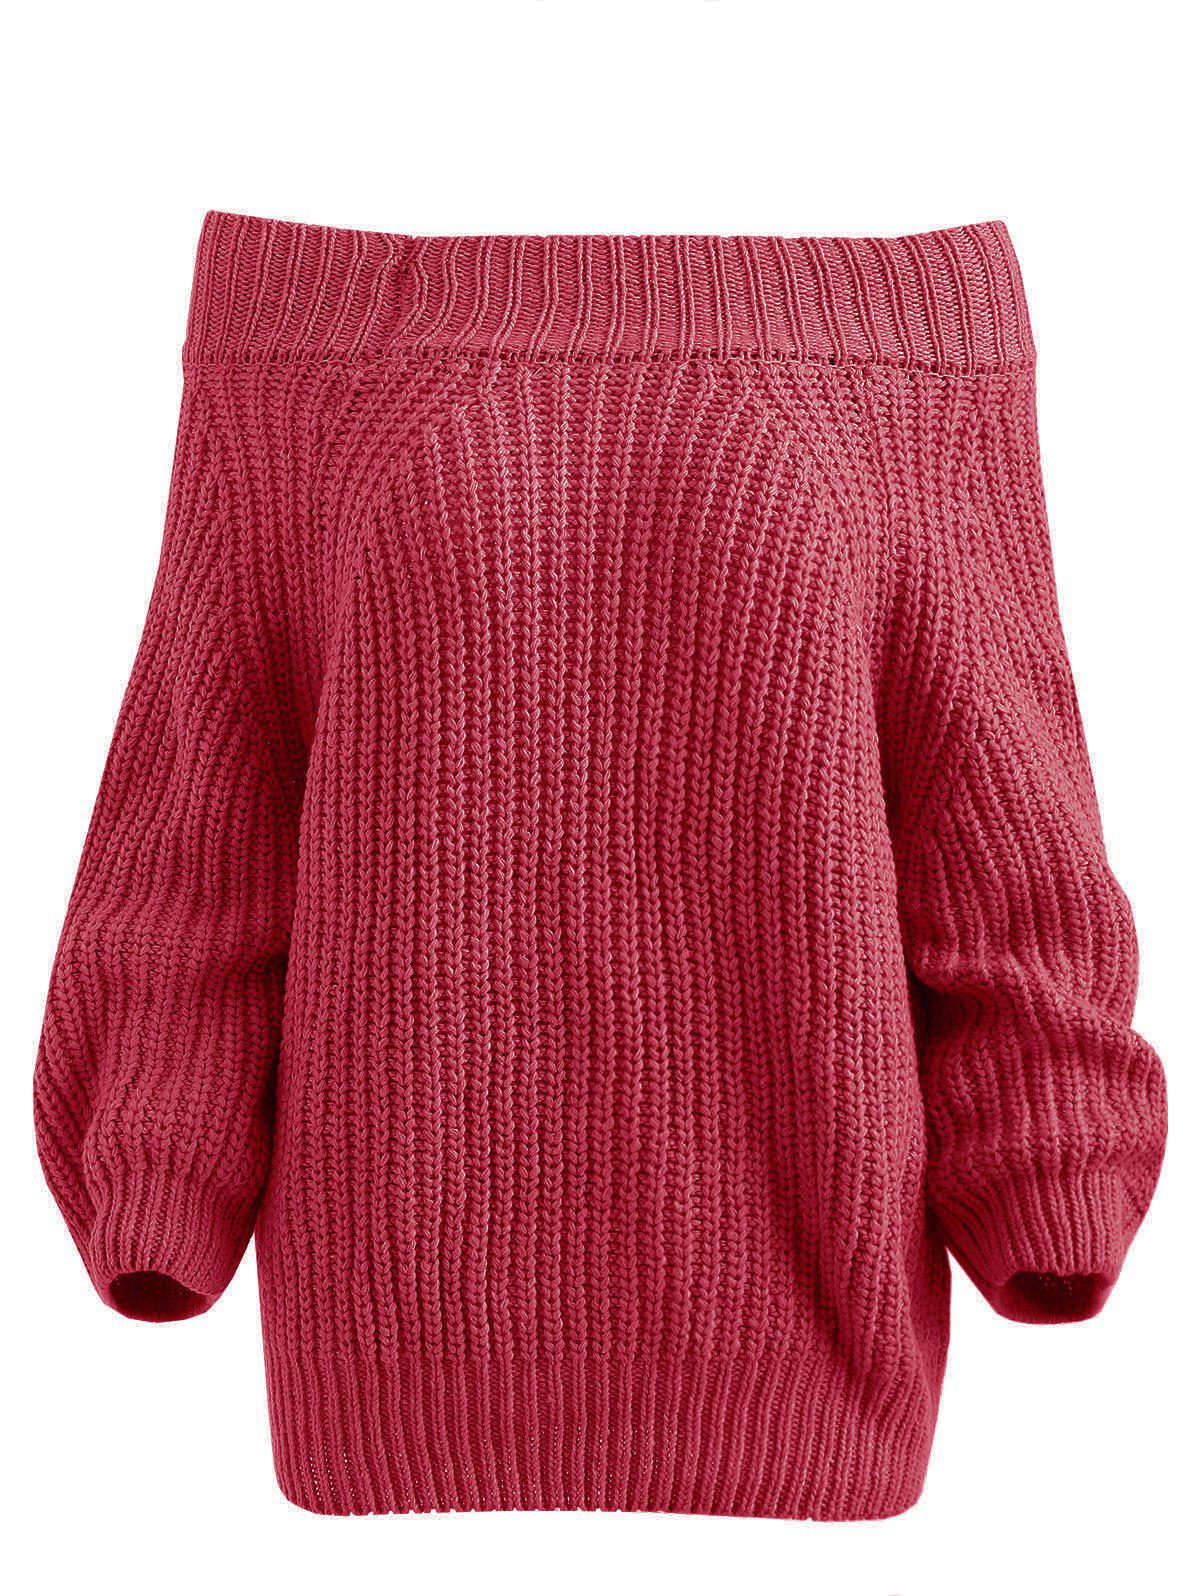 Chunky Off The Shoulder Pullover Sweater - RED ONE SIZE